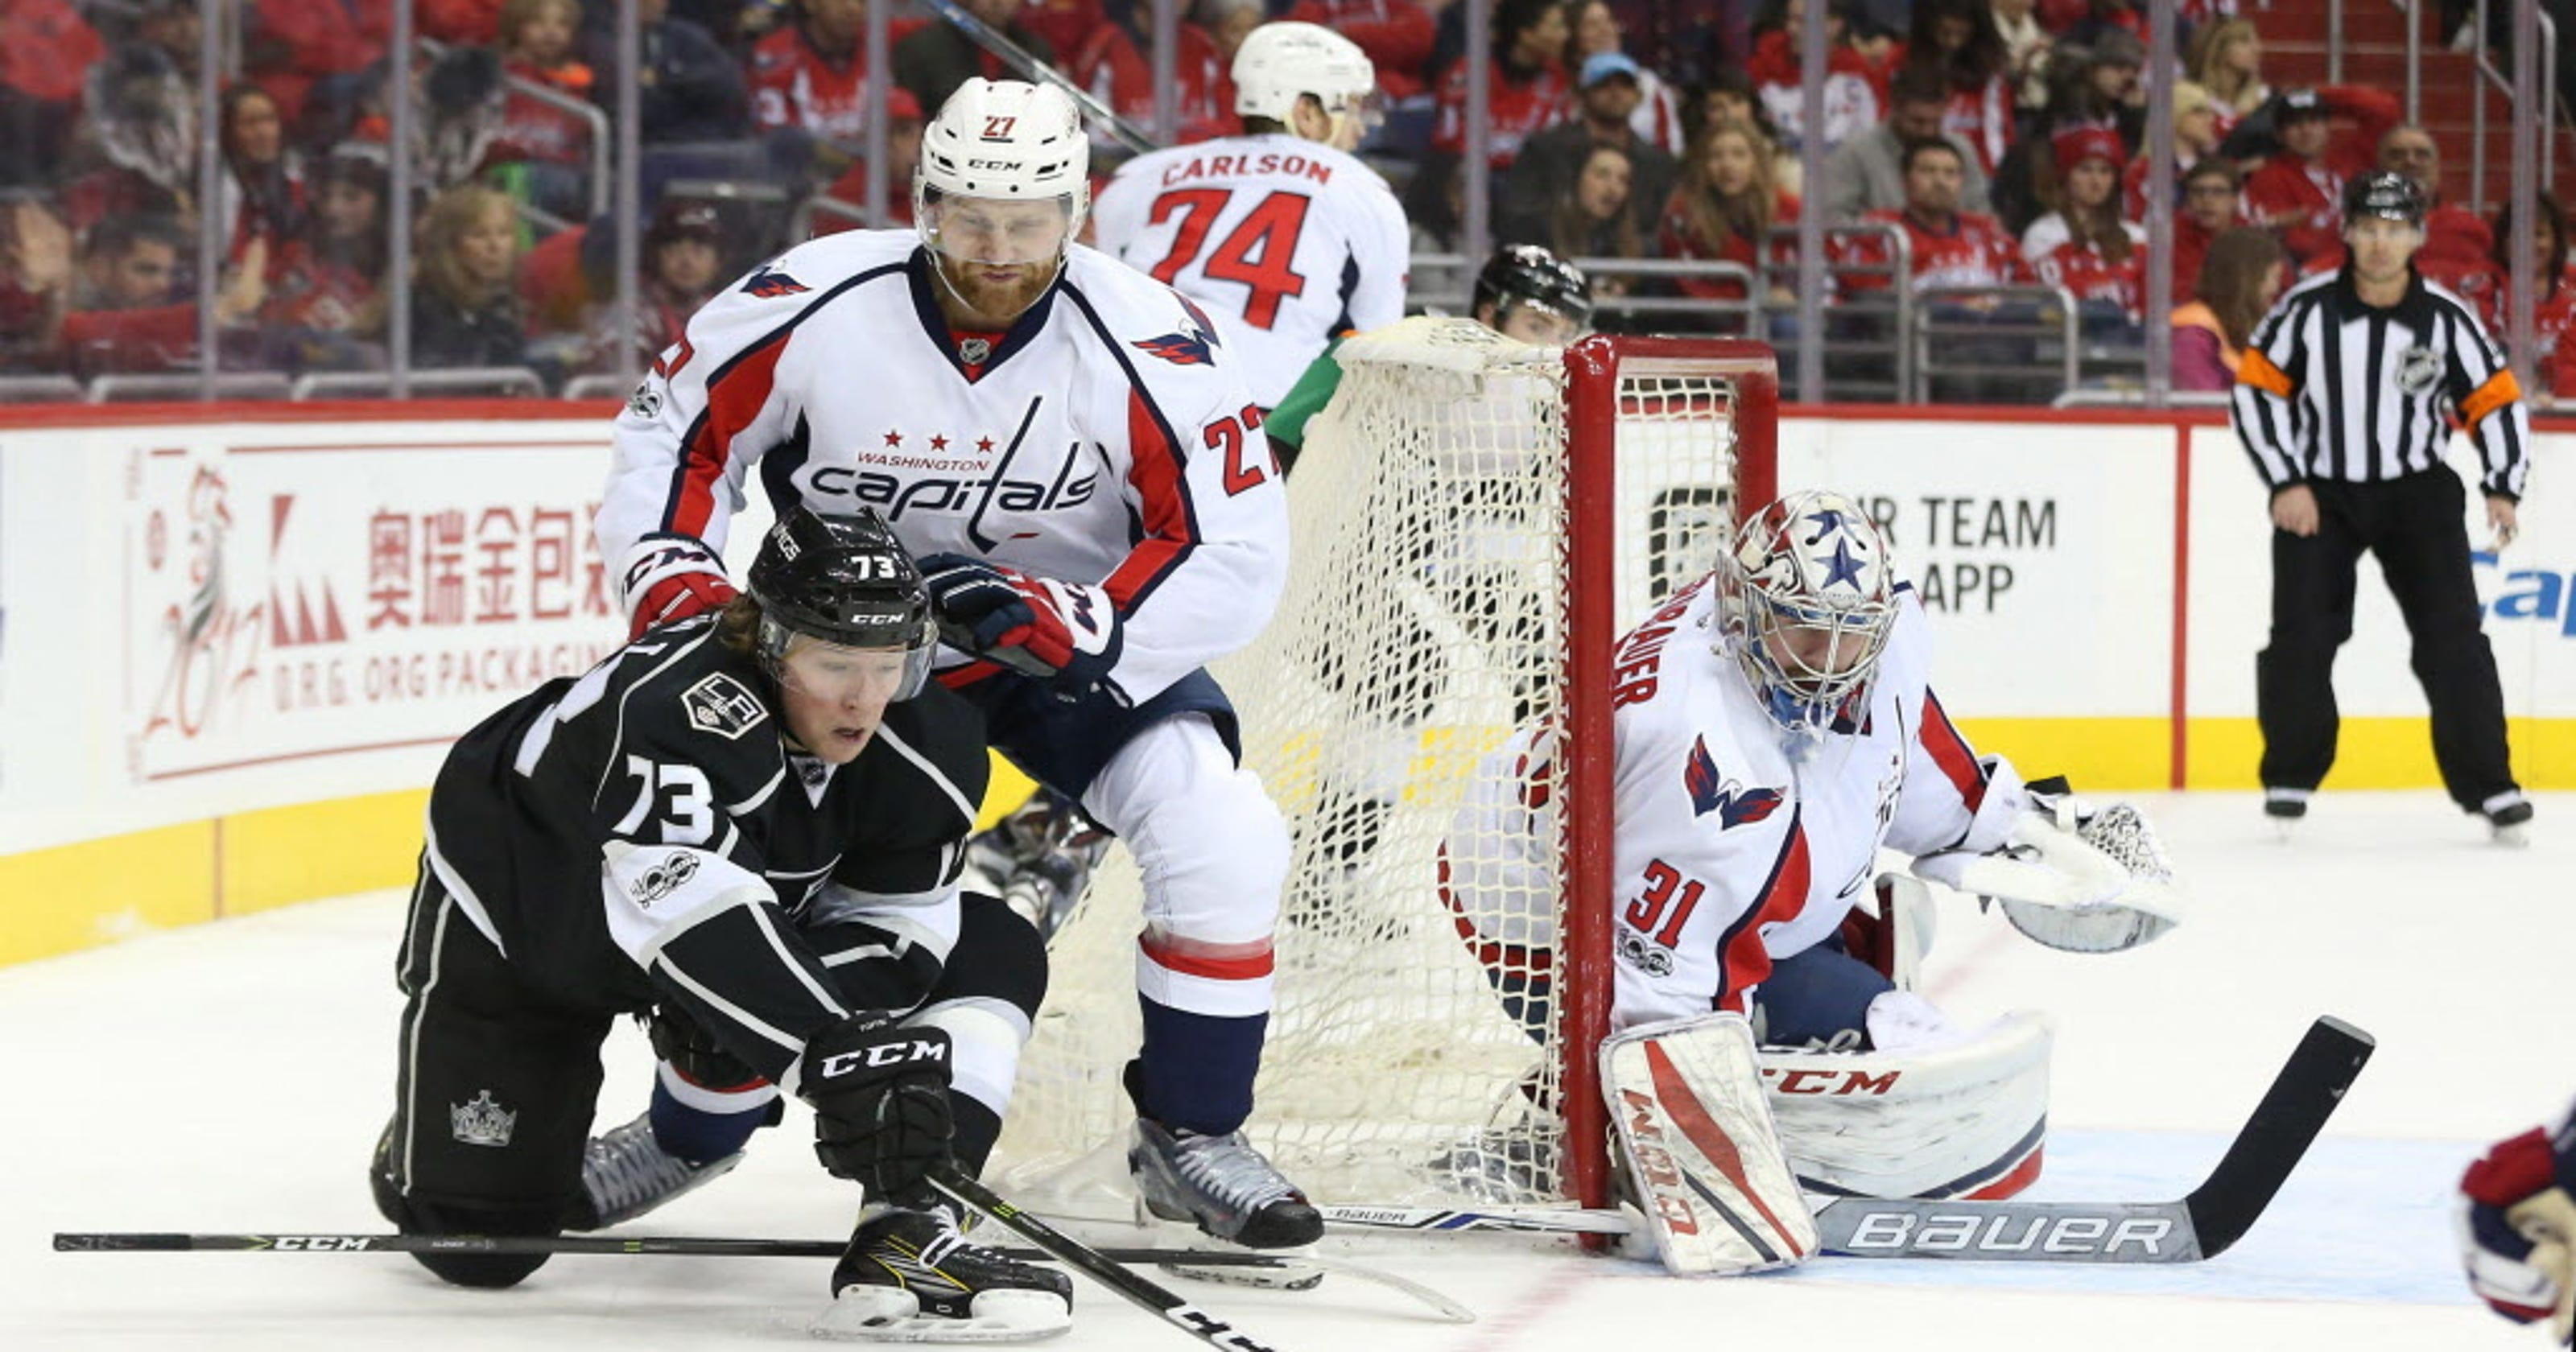 Capitals goalie Philipp Grubauer shuts out Kings d2bab558f153